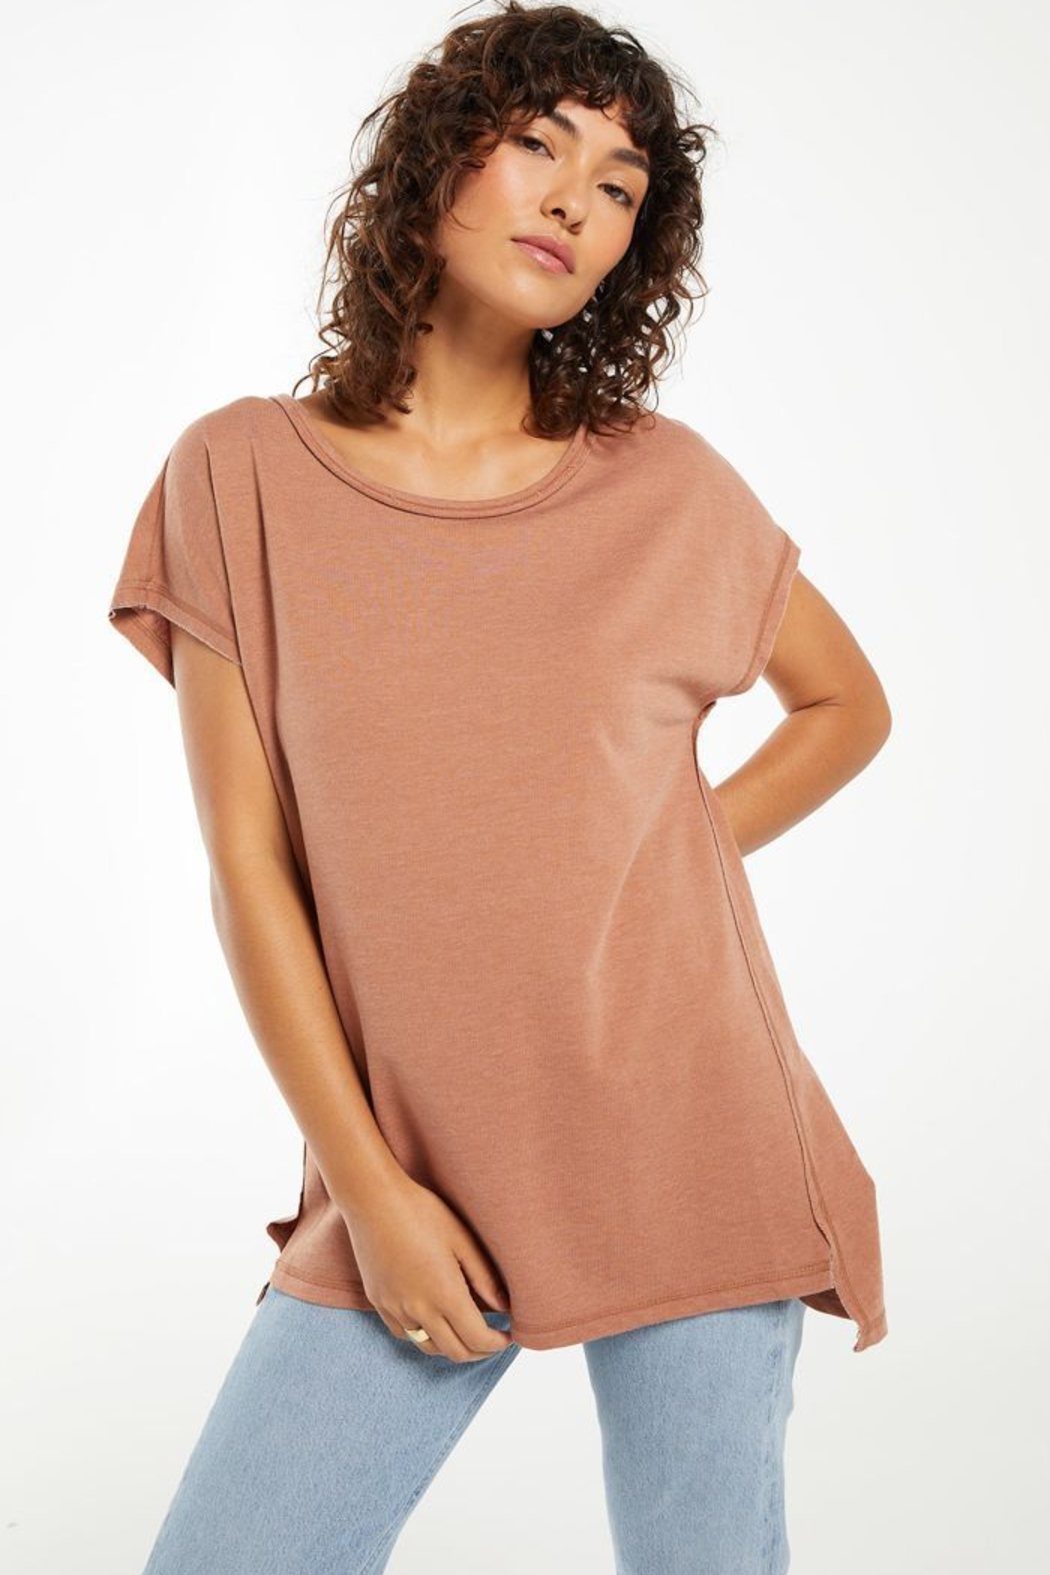 z supply Z Supply Frankie Tunic Tee - Vintage Brown - Main Image